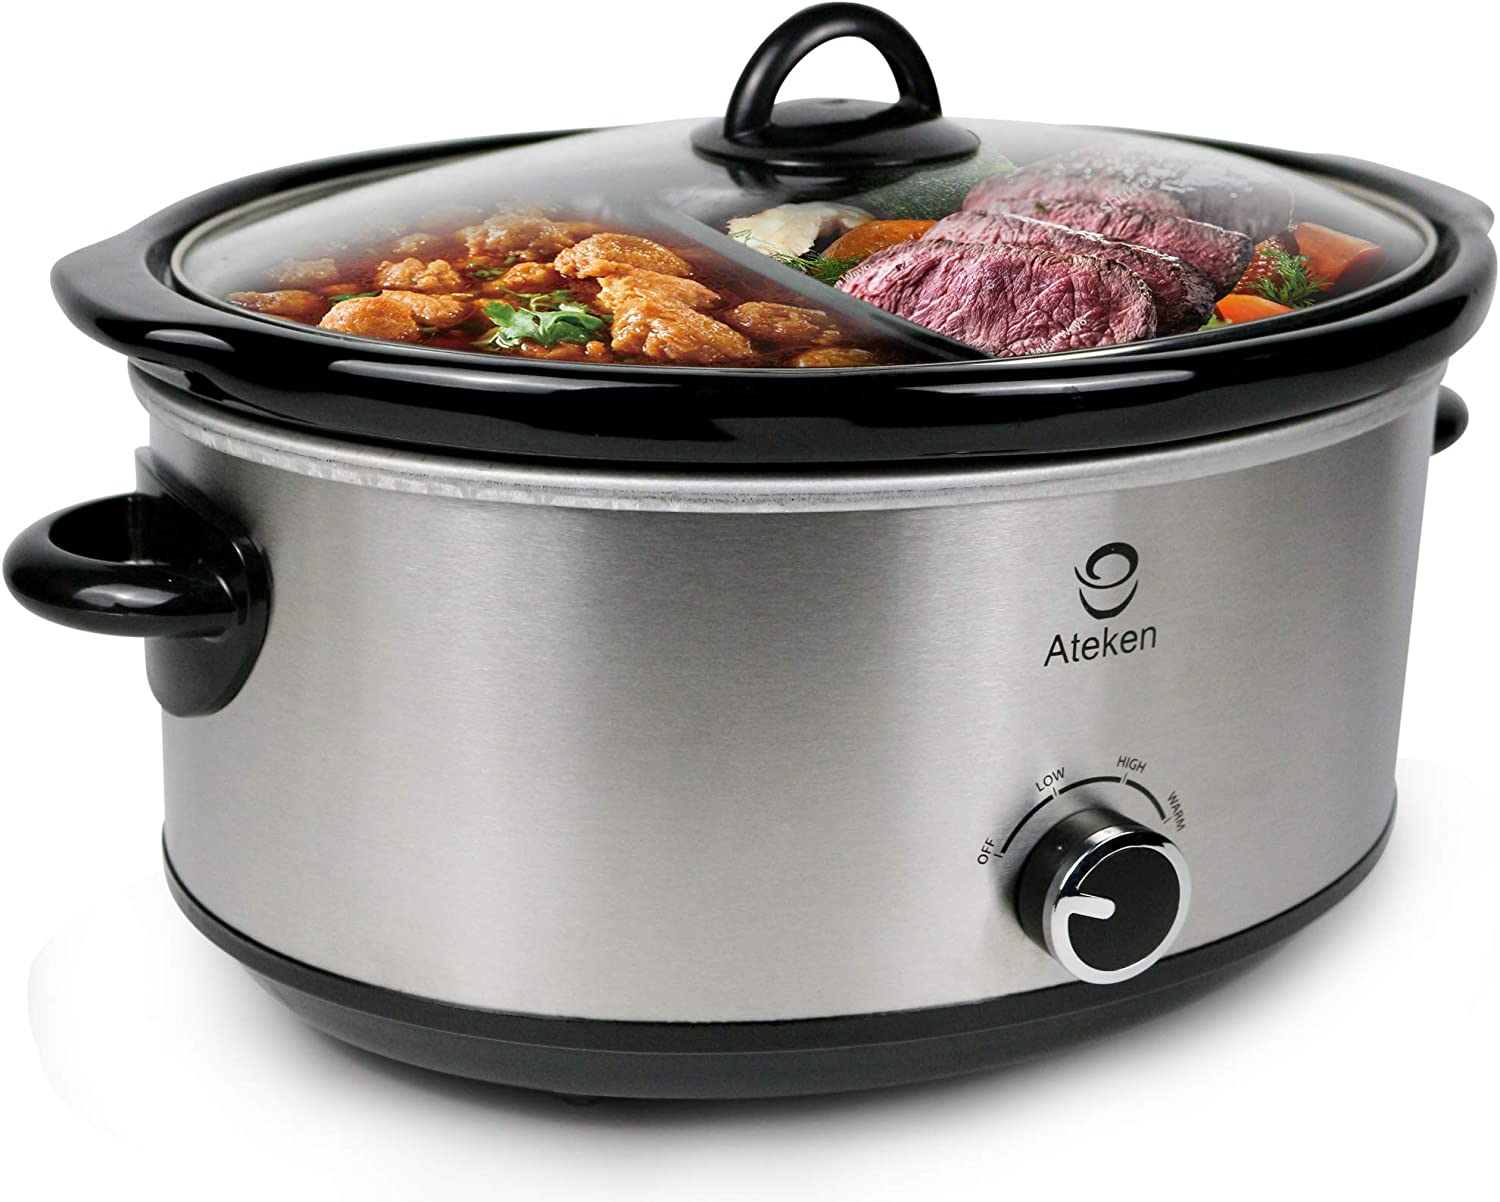 Ateken Slow Cooker 2x3.5 Quart Oval Double-Flavor Pot with Tempered-Glass Lid and Black Ceramic Pot Stainless Steel